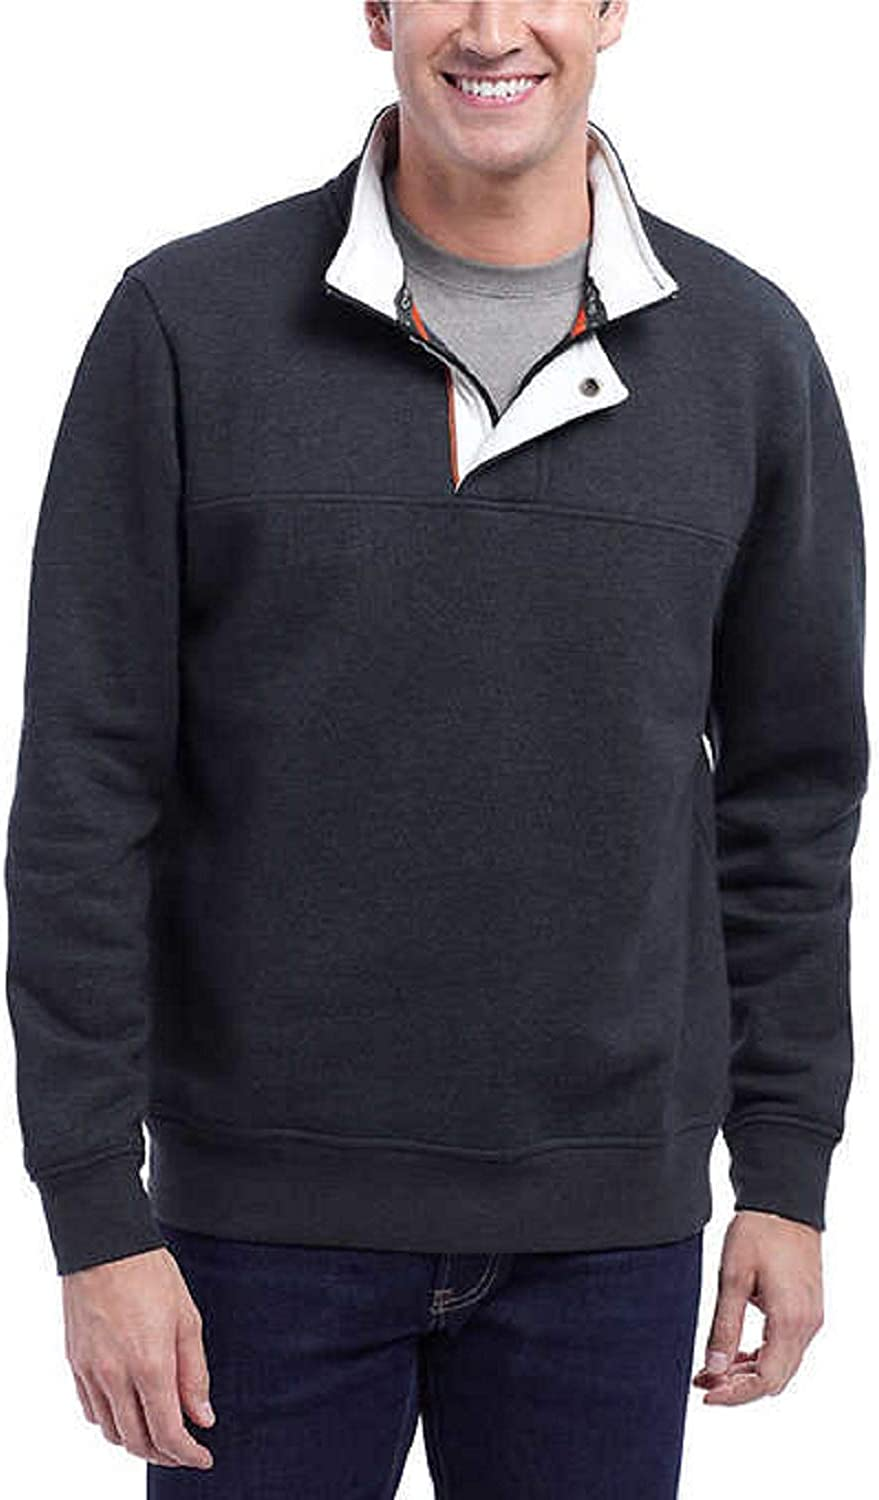 Orvis Mens Signature Pullover (Charcoal/White